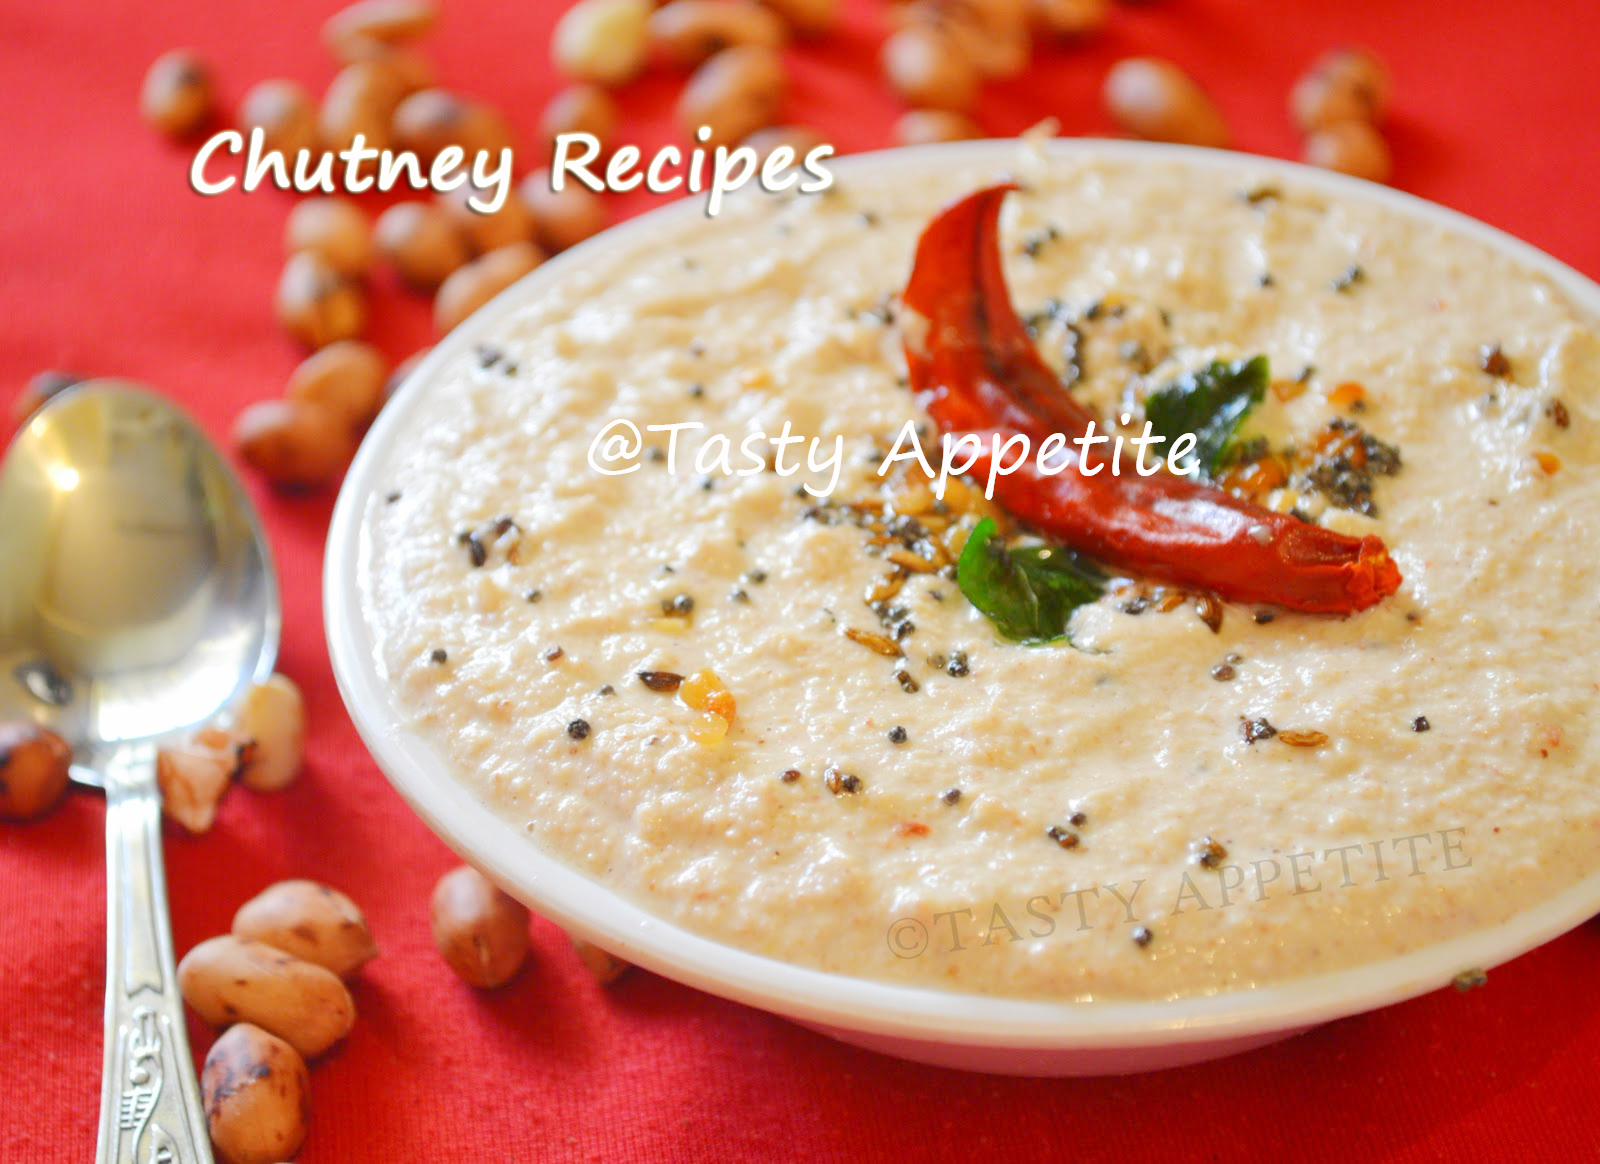 Chutney recipes indian chutney recipes side dish for idly dosa forumfinder Gallery